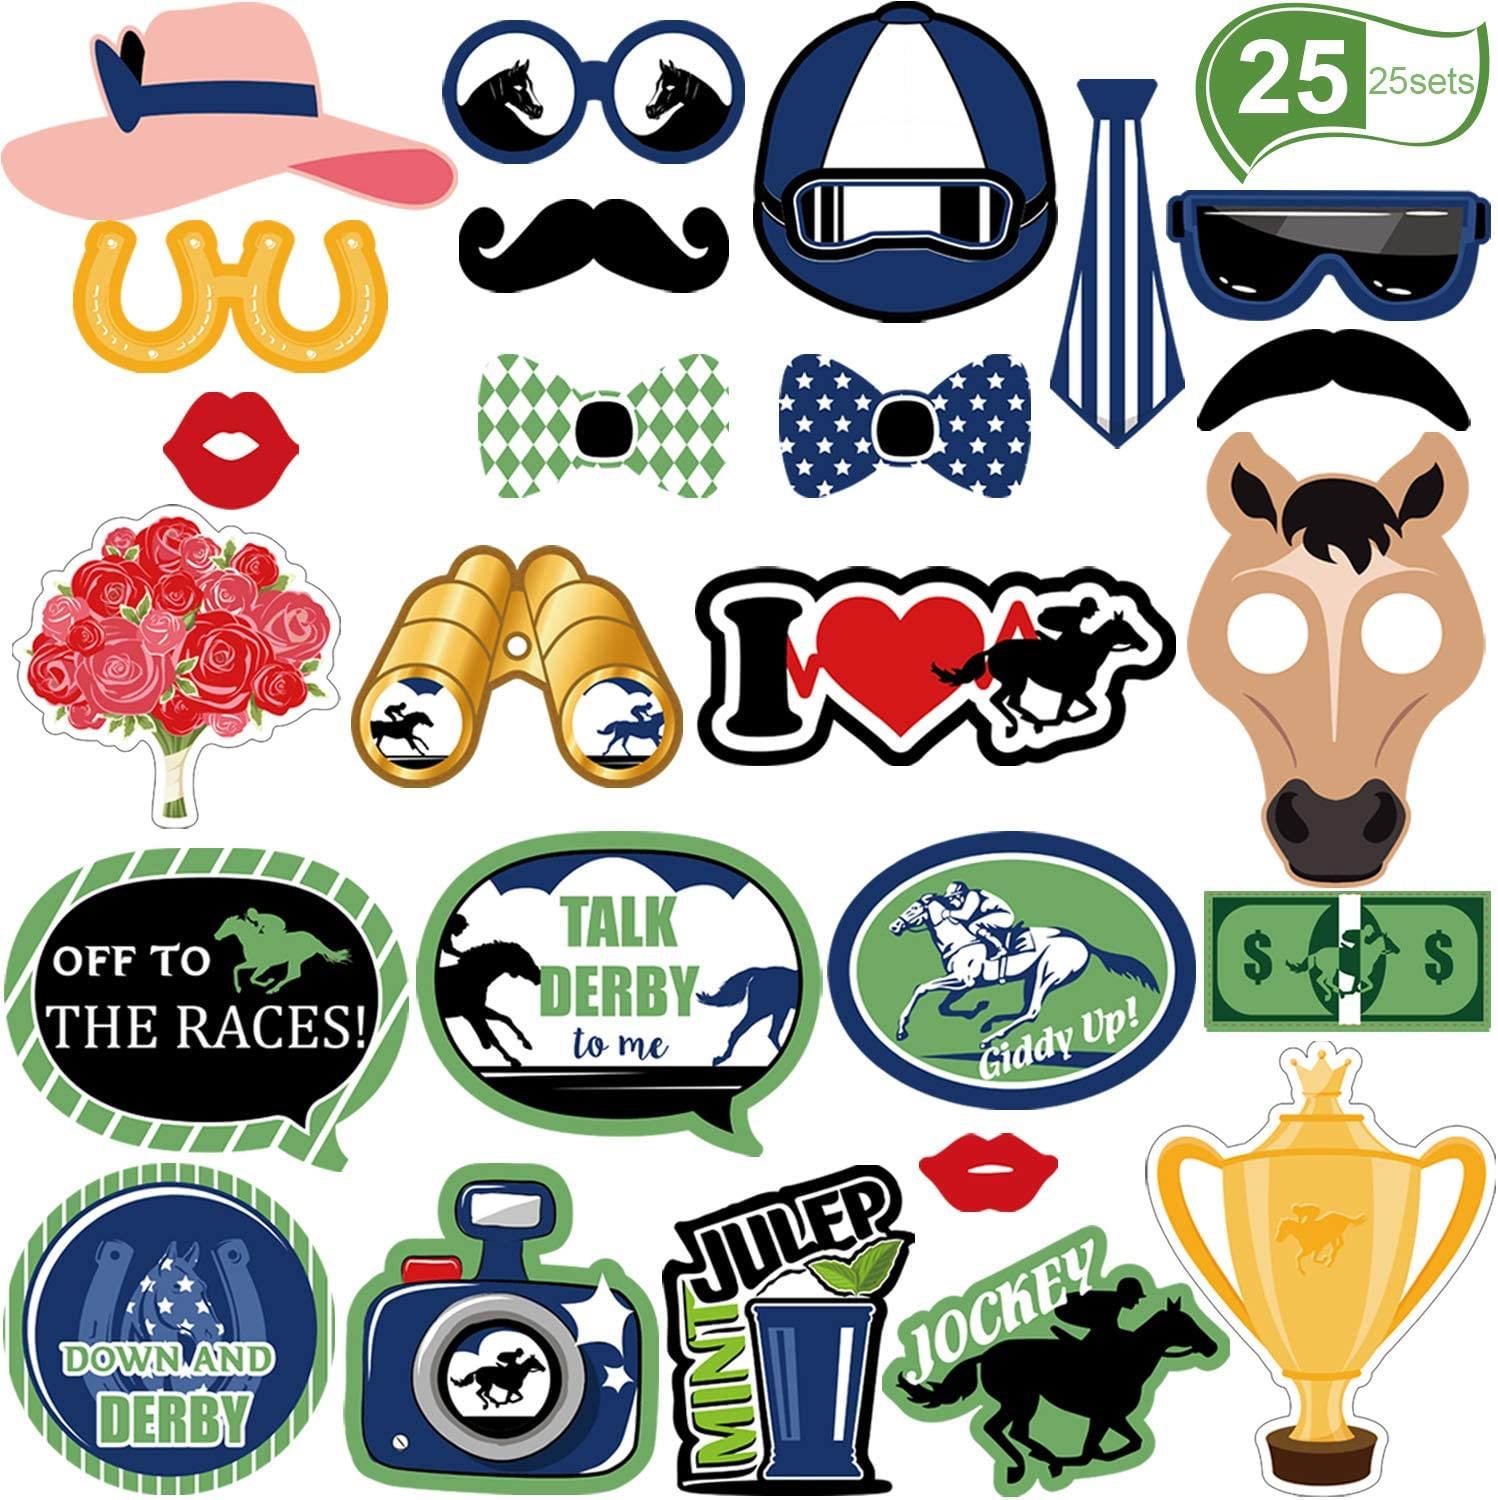 Horse Race Party Photo Booth Props Kit Derby Party Supplies, Horse Racing Camera Props for Derby Horse Racing Kentucky Party Favors, 25 Pieces